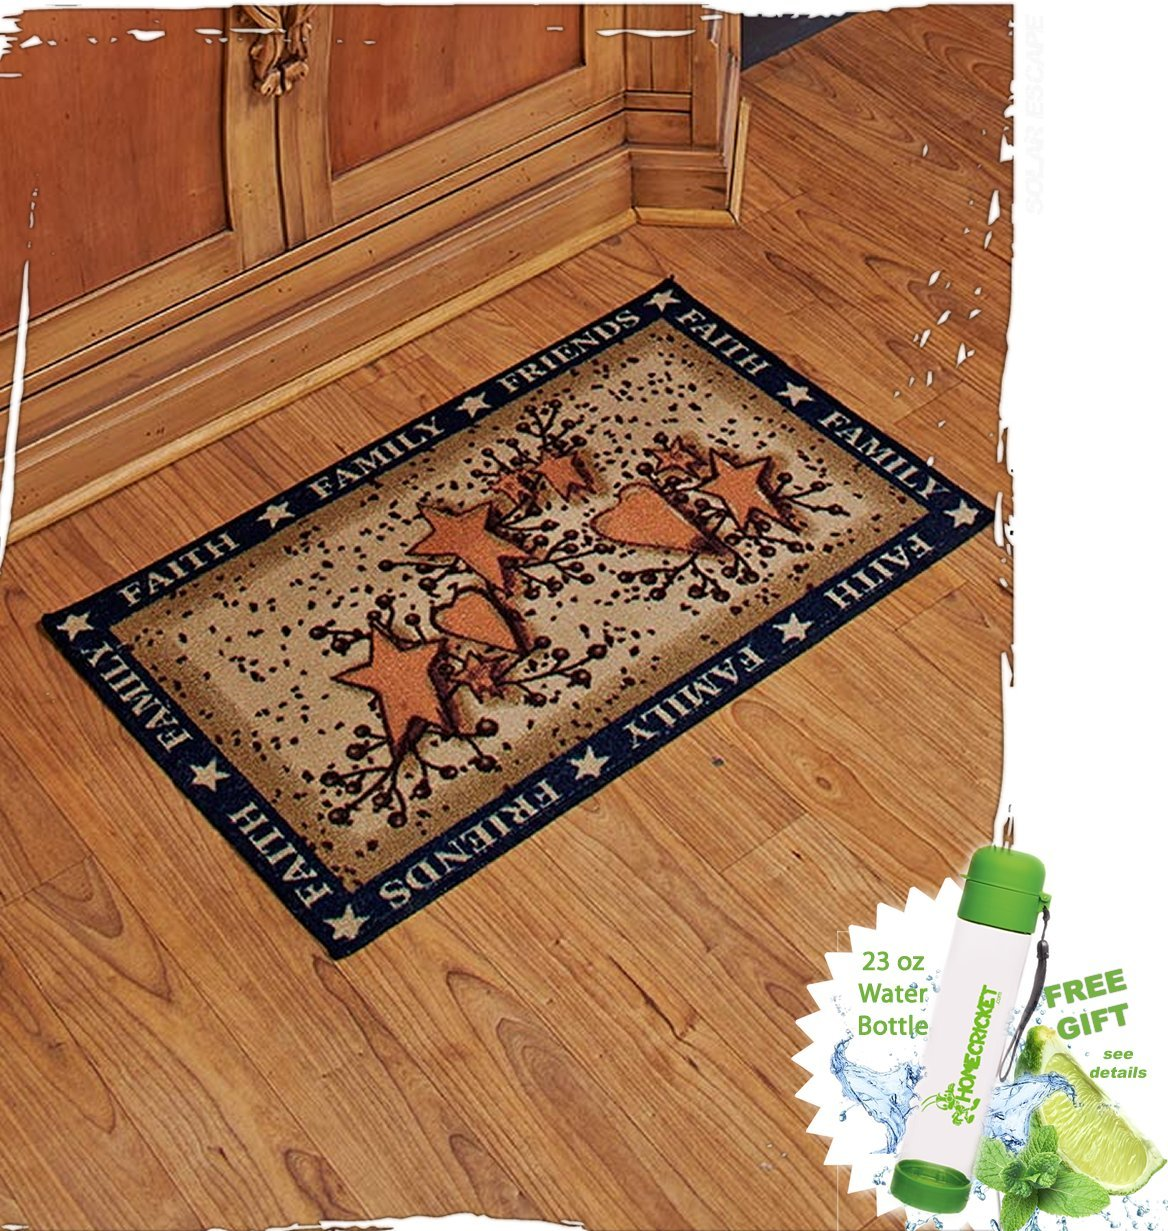 Gift Included- Country Kitchen Hearts and Stars Floor Rug Mat + FREE Bonus 23 oz Water Bottle byHomecricket